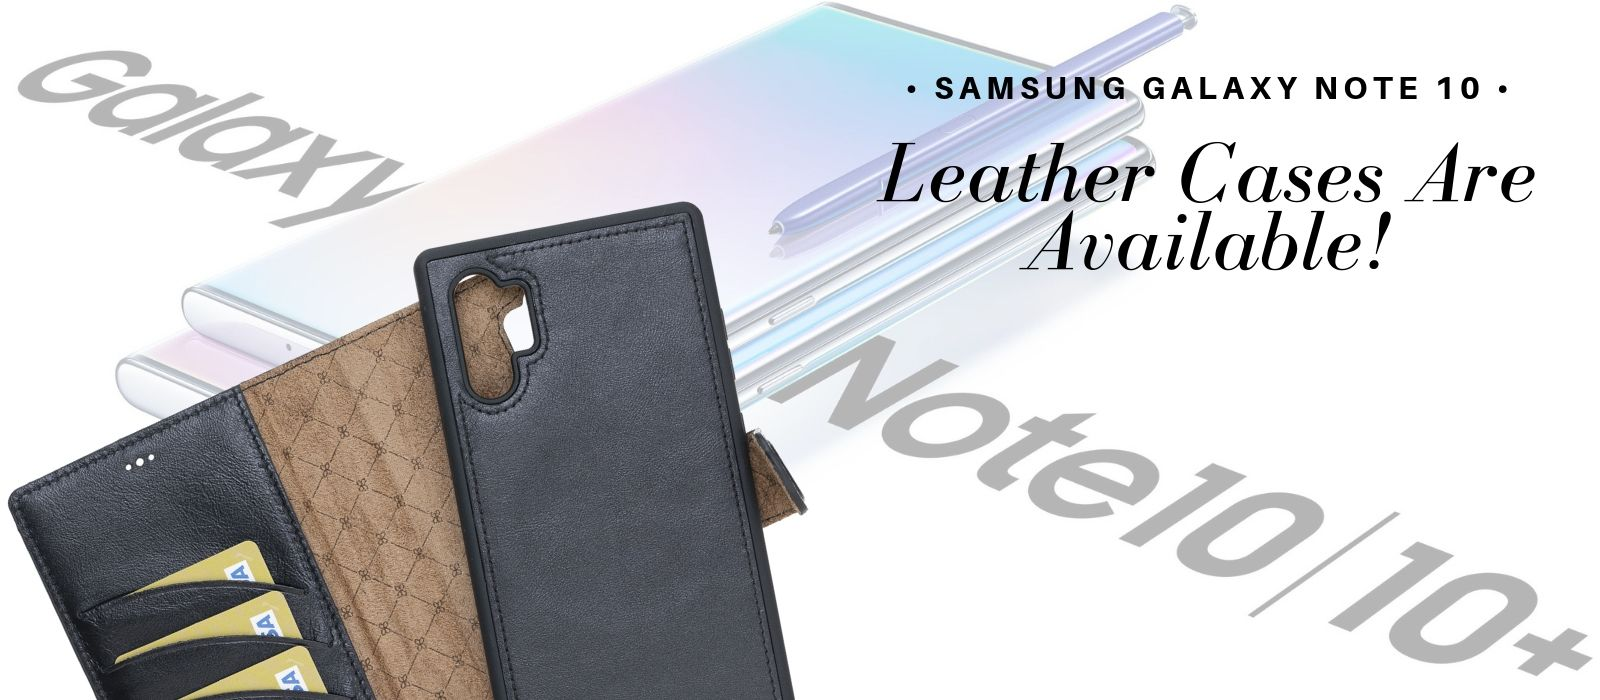 Bouletta Case - Leather Phone Cases Watch Straps Bags and